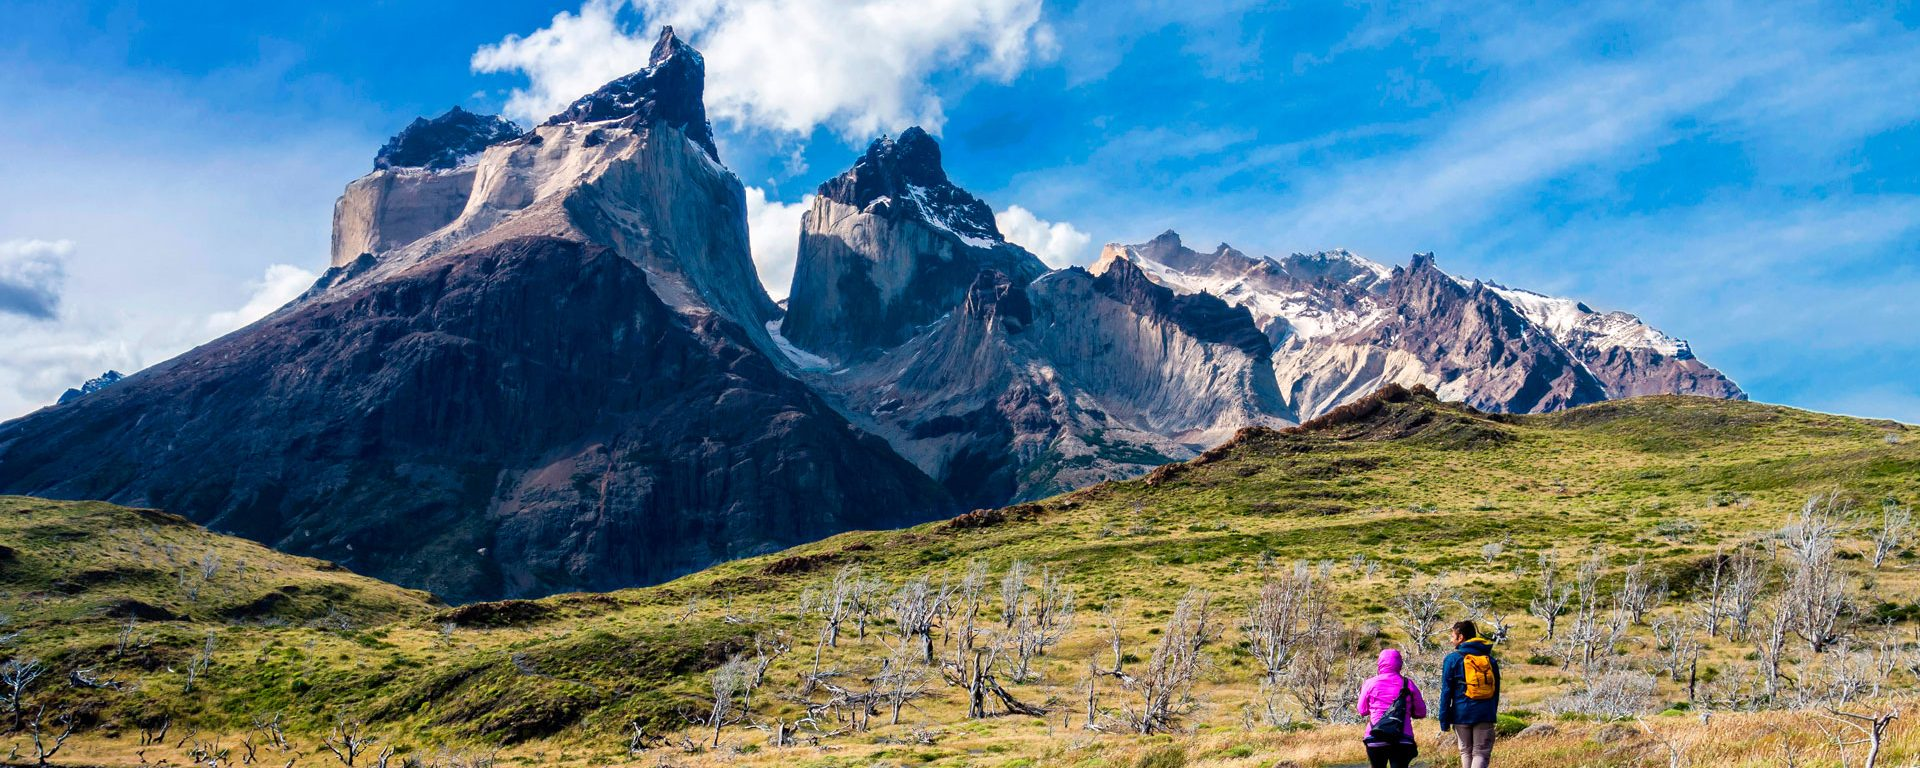 Hikers approaching the Mirador Cuernos viewpoint in Torres del Paine National Park, Patagonia, Chile